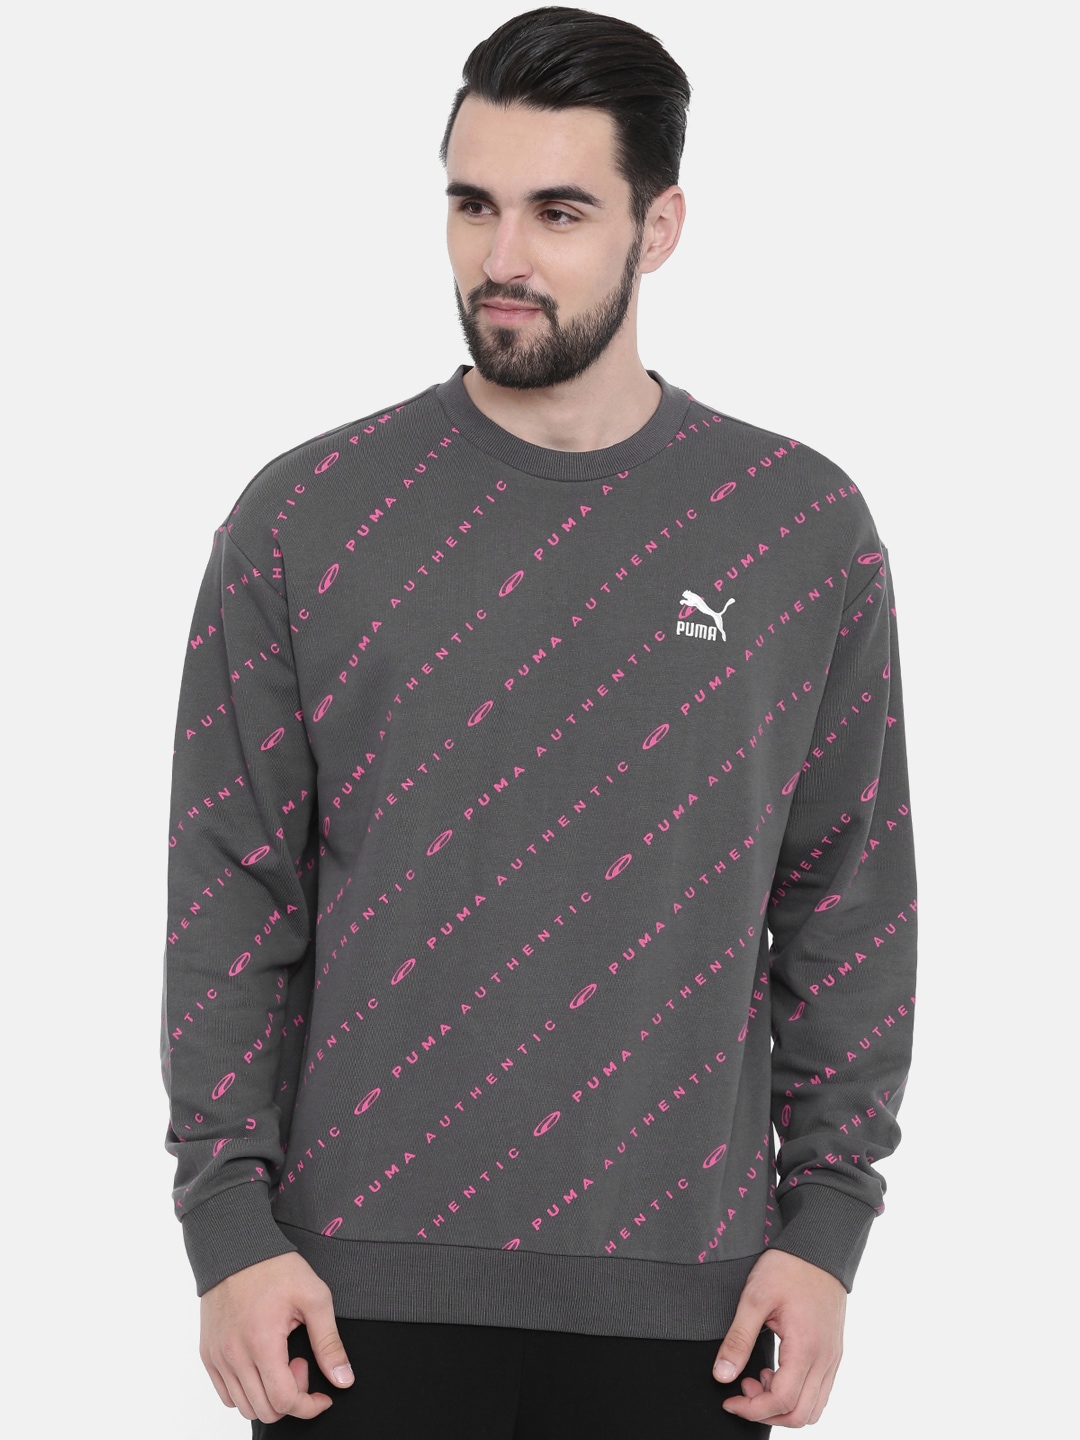 72fc63e1c758 Sweatshirts For Men - Buy Mens Sweatshirts Online India